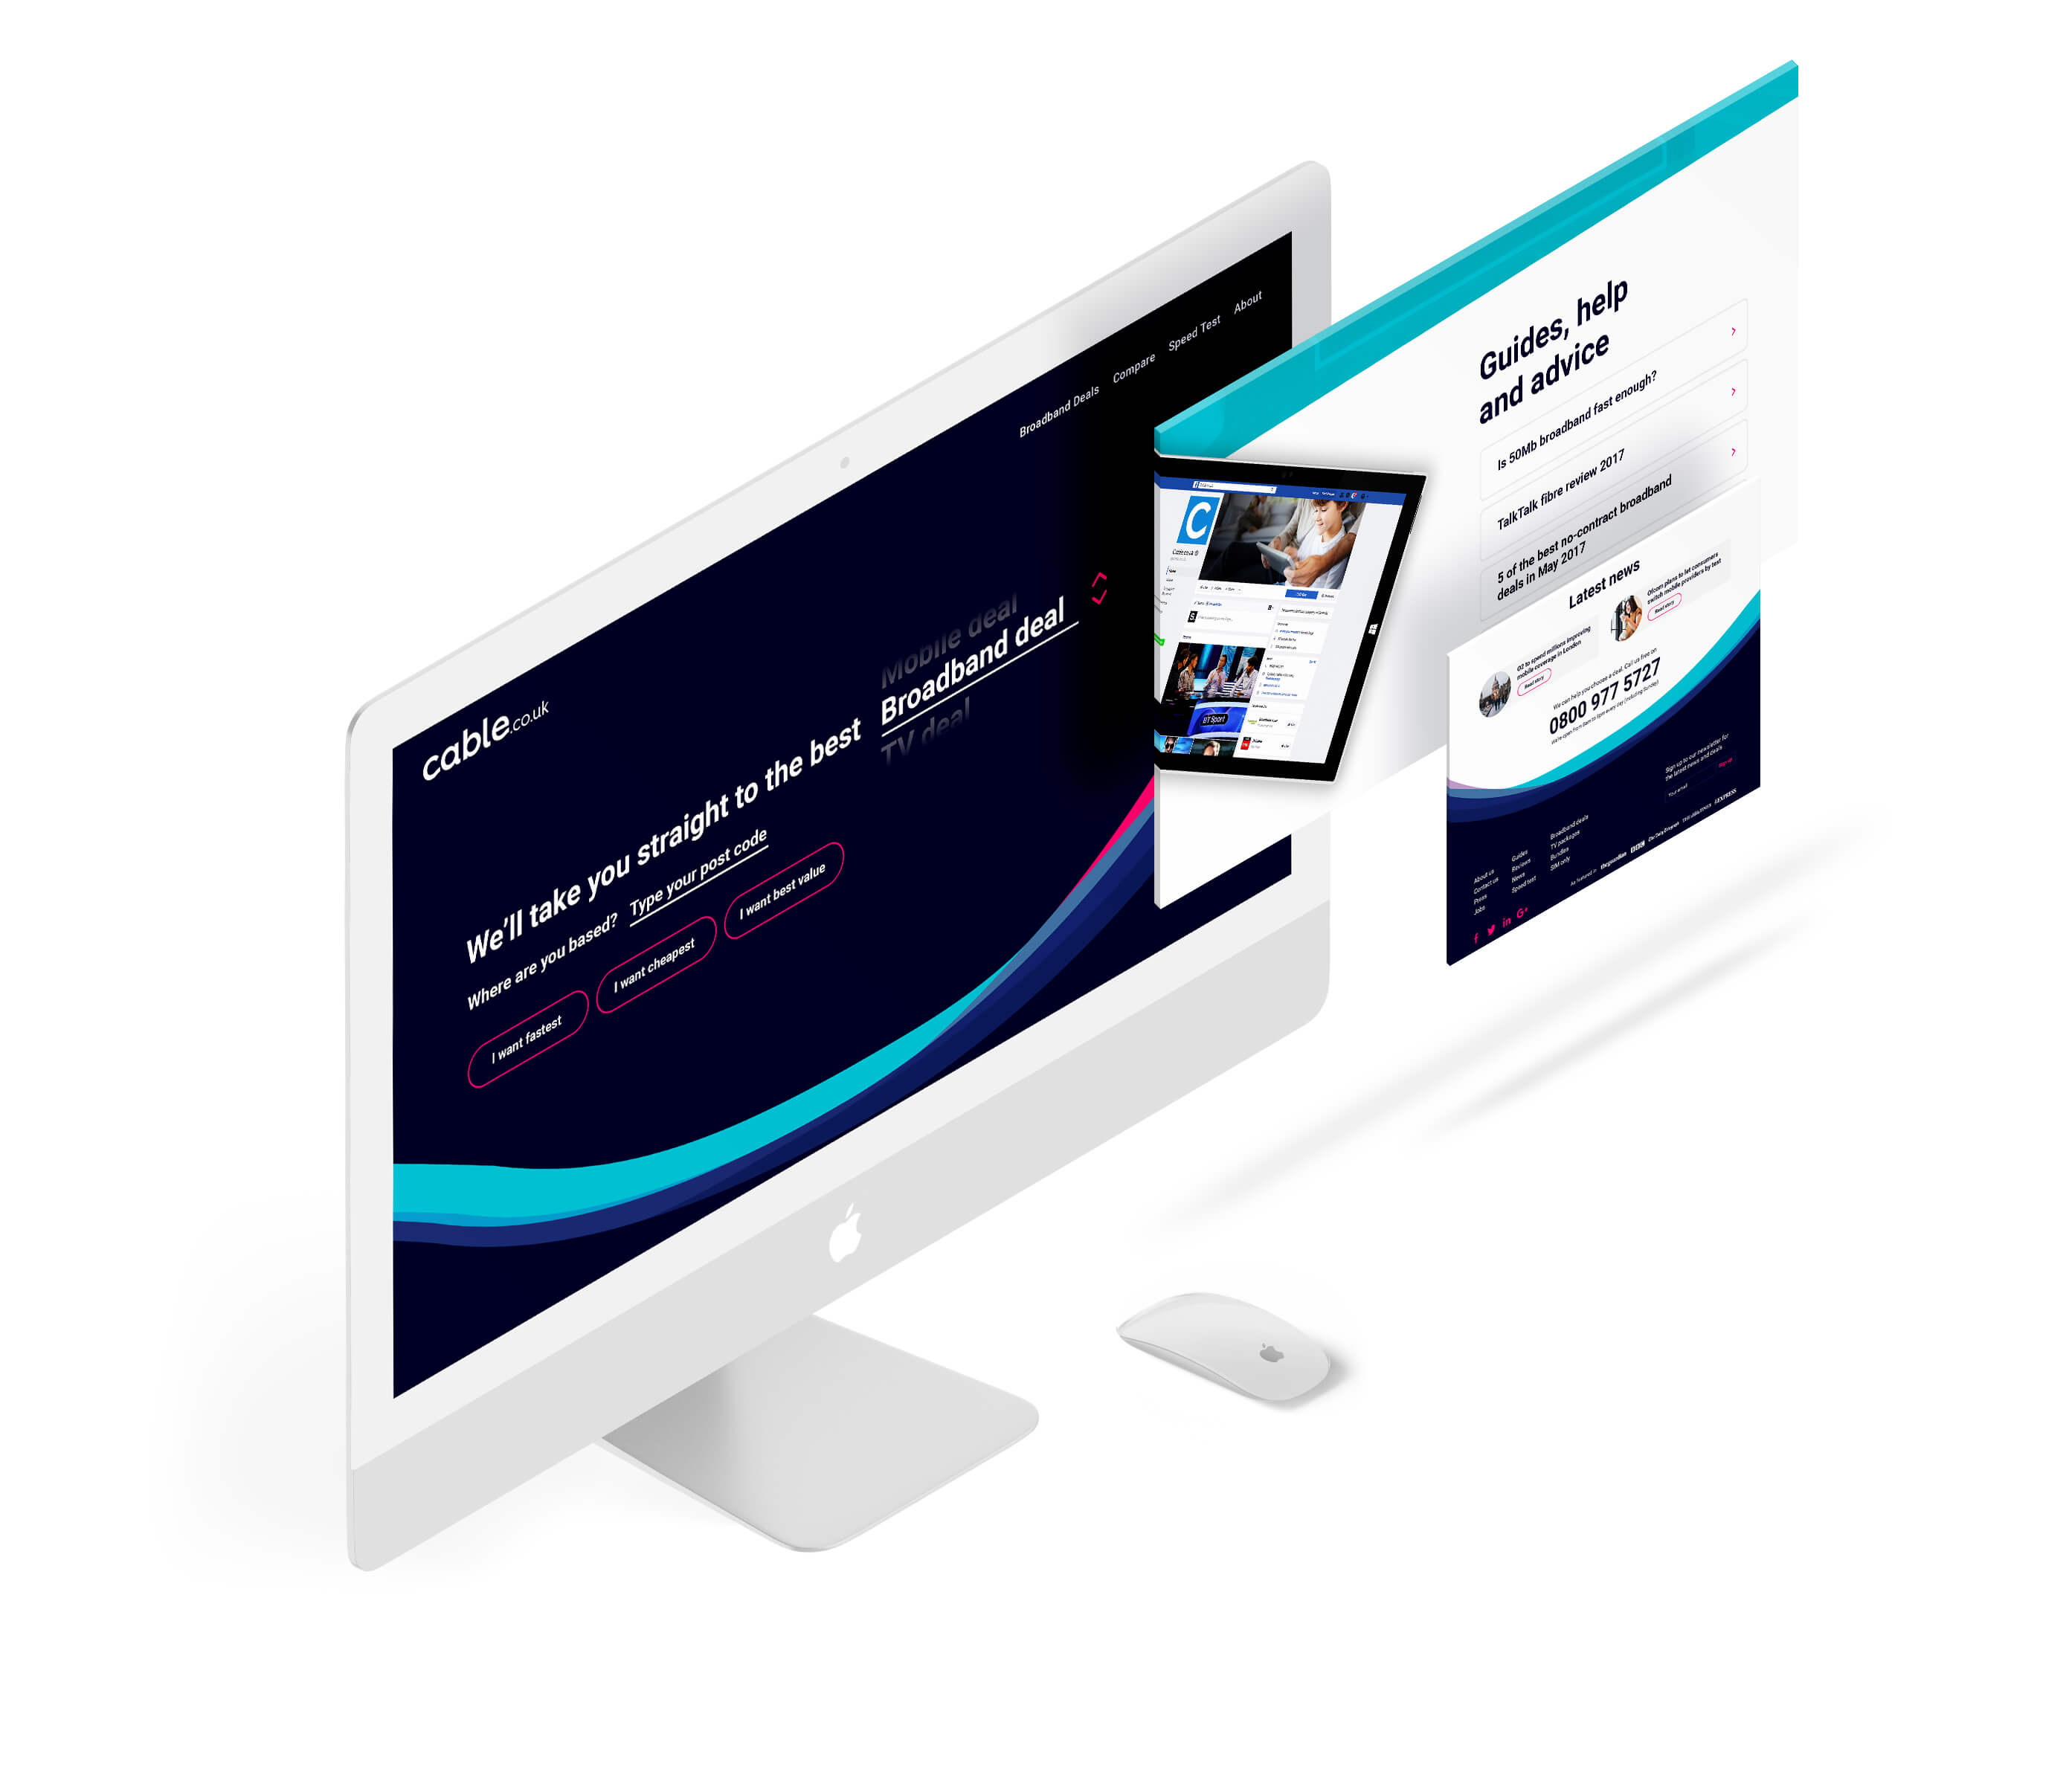 An mockup of Cable.co.uk web design